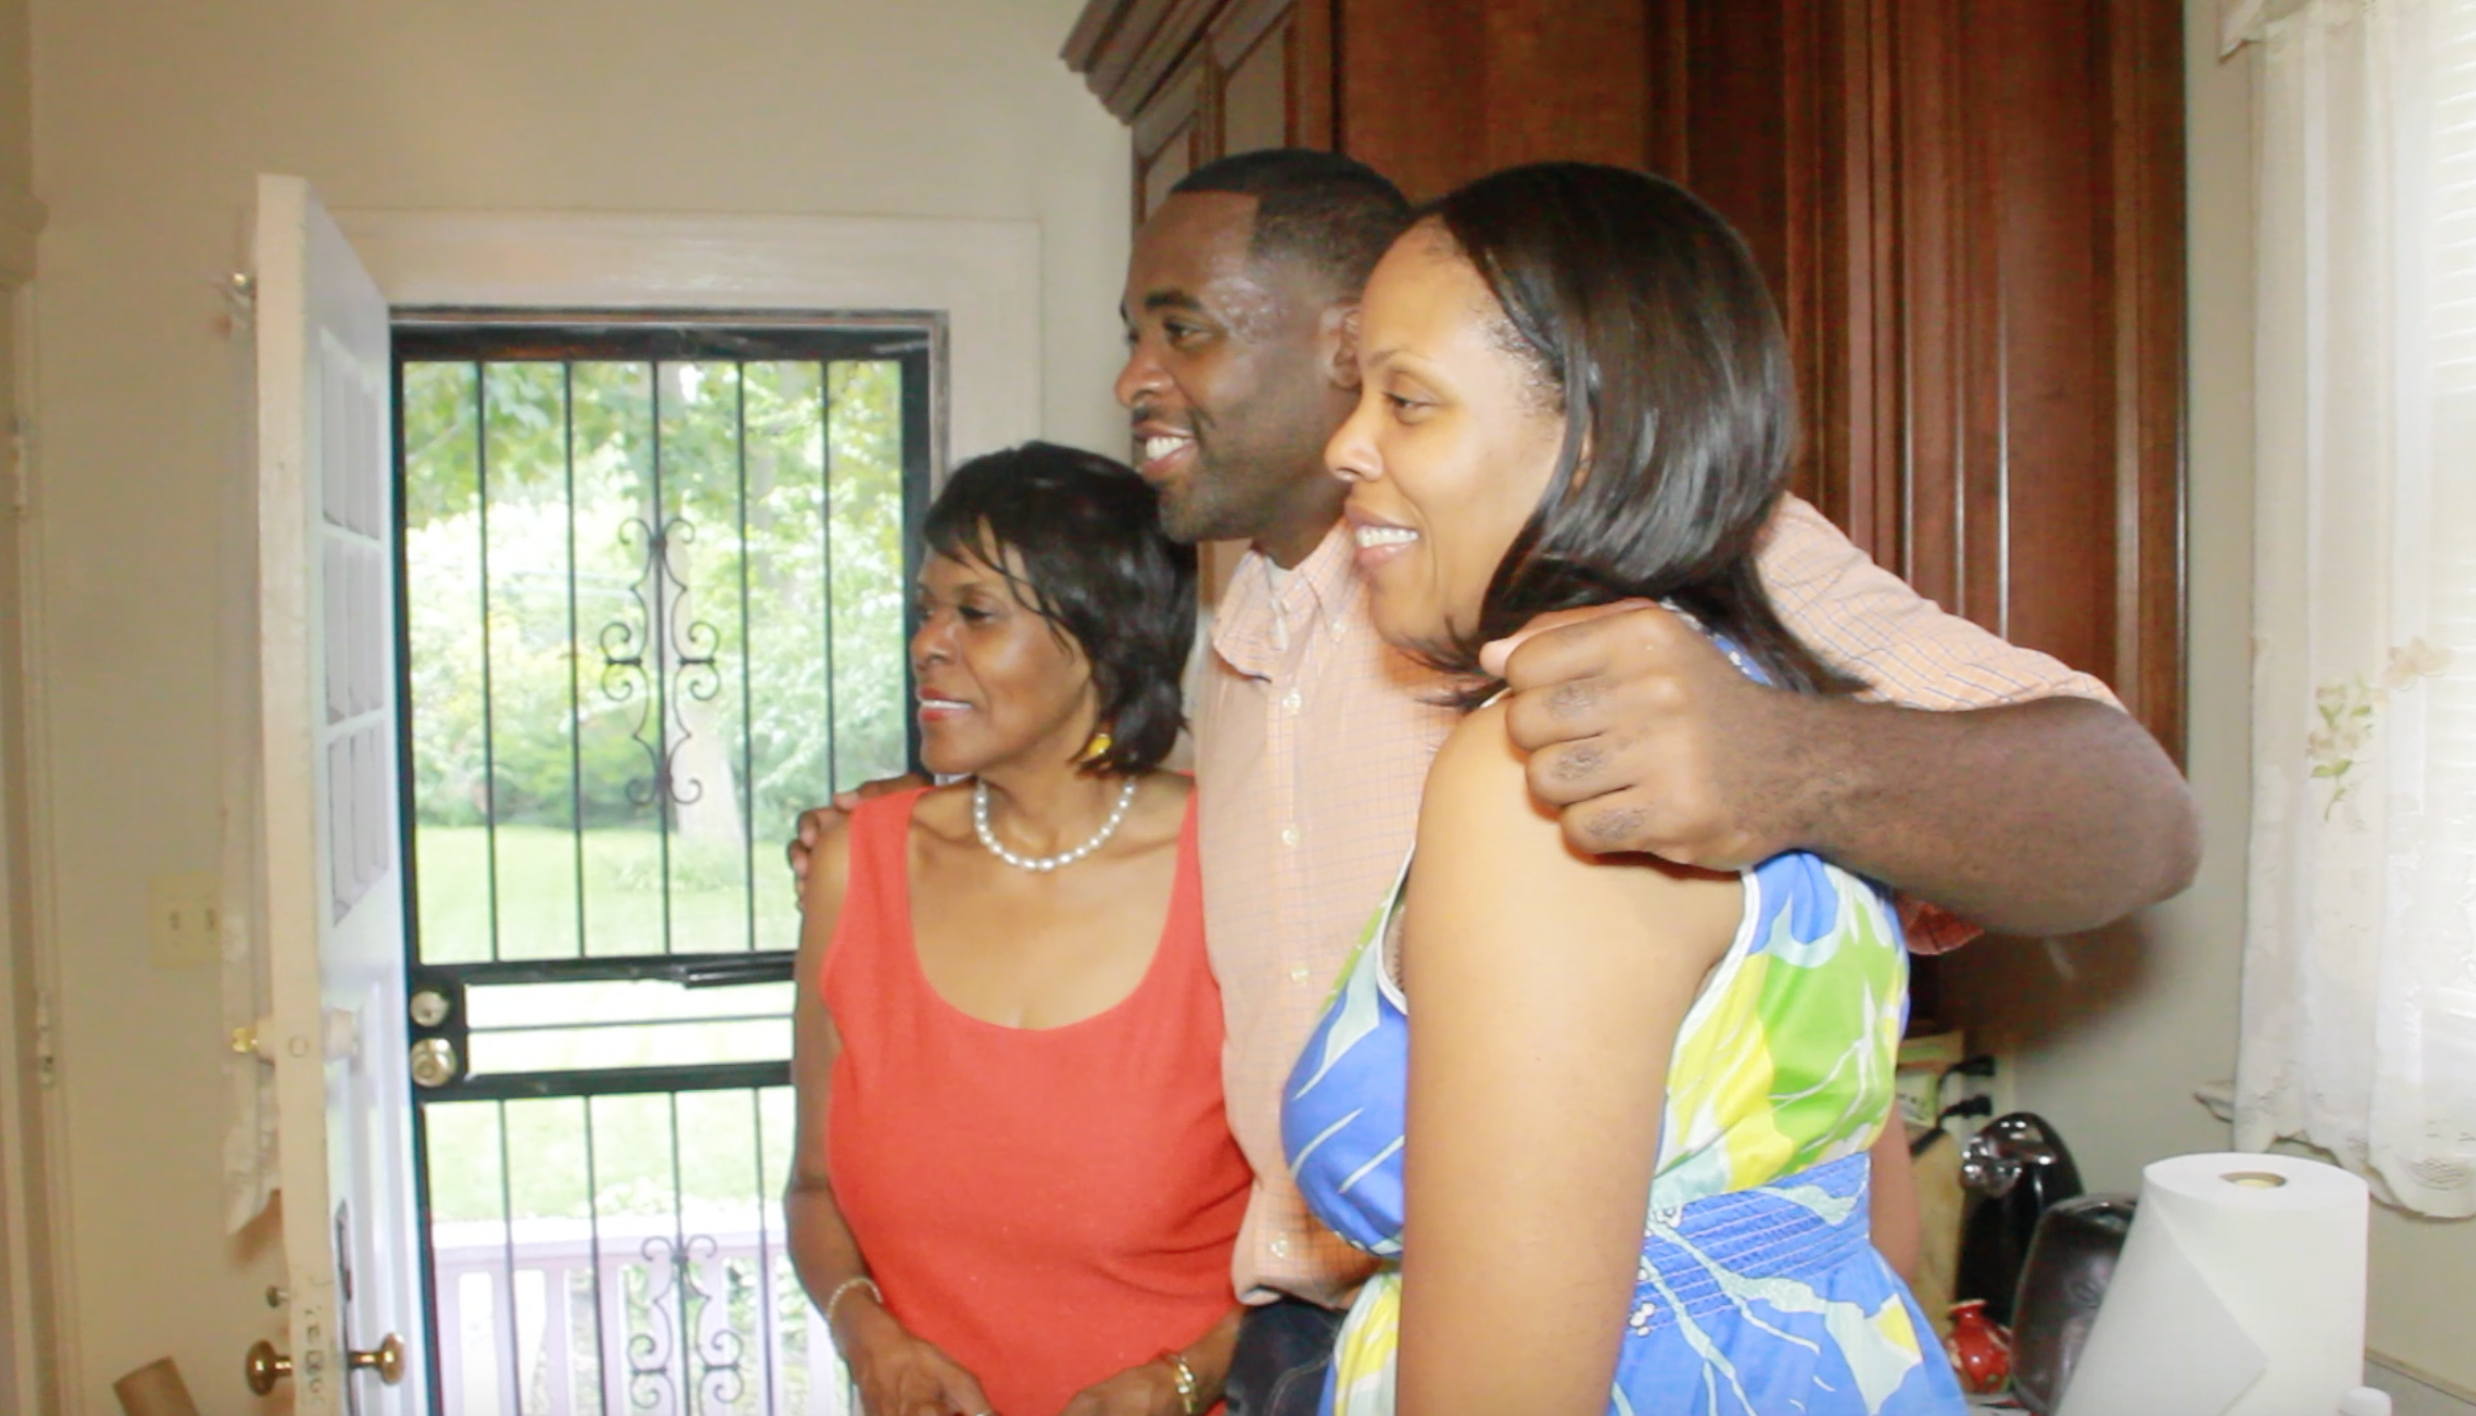 The day Kwame Kilpatrick is released from prison in 2011, his mother, Carolyn Cheeks Kilpatrick, left, hosts a party to celebrate.  Courtesy of Tim and Tobias Smith.